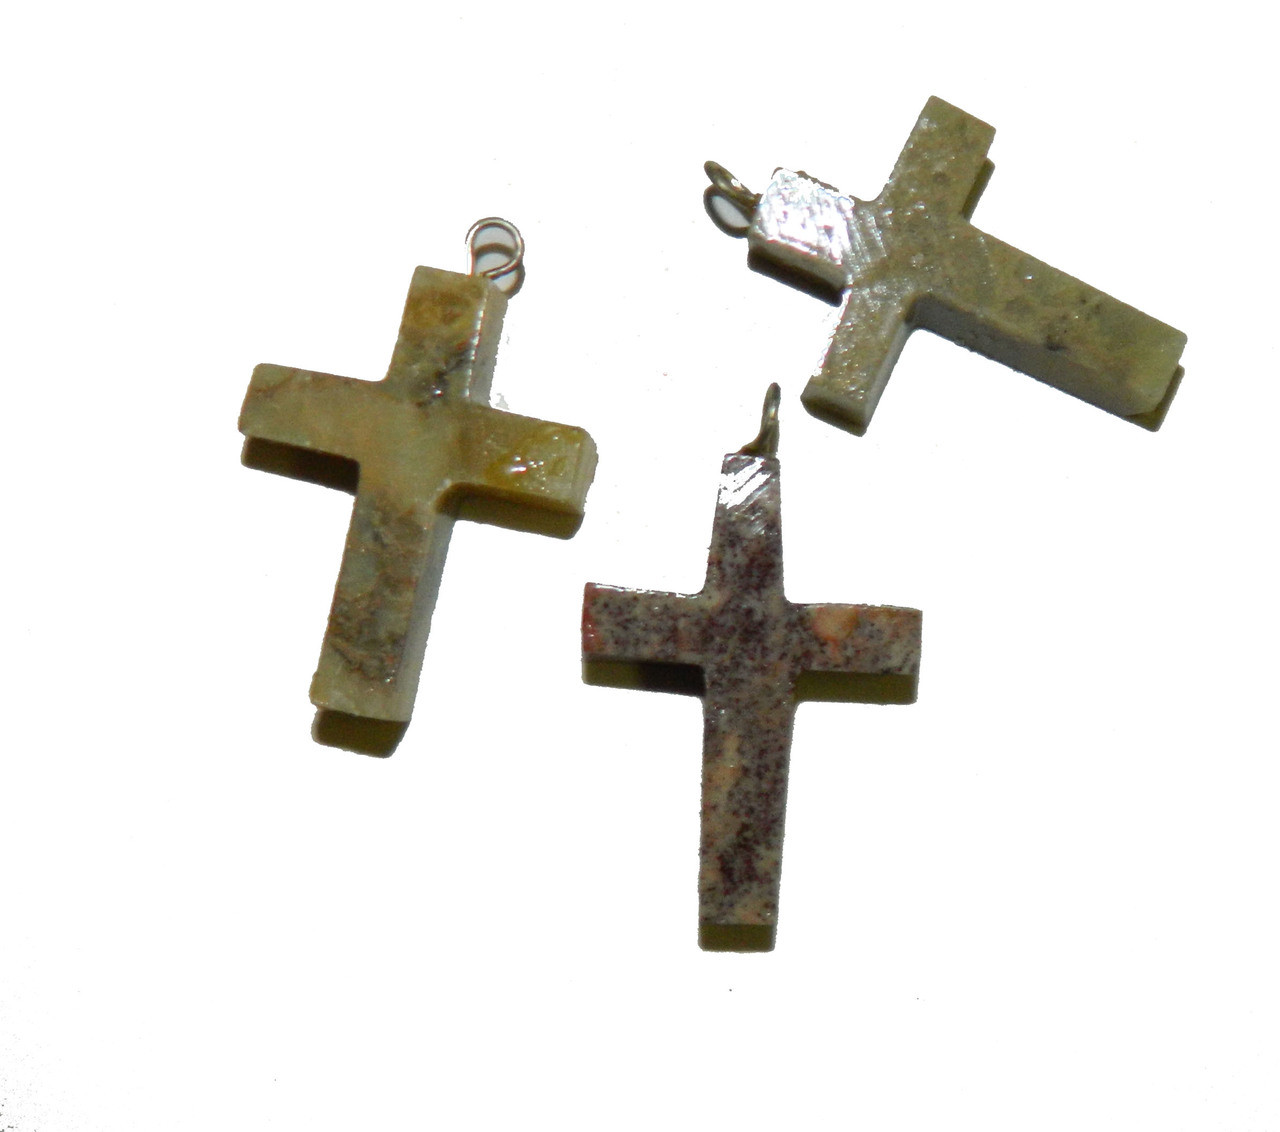 3 hand carved soap stone cross pendants with loop 30x20mm 3 hand carved soap stone cross pendants with loop 30x20mm ba sj 3 aloadofball Image collections